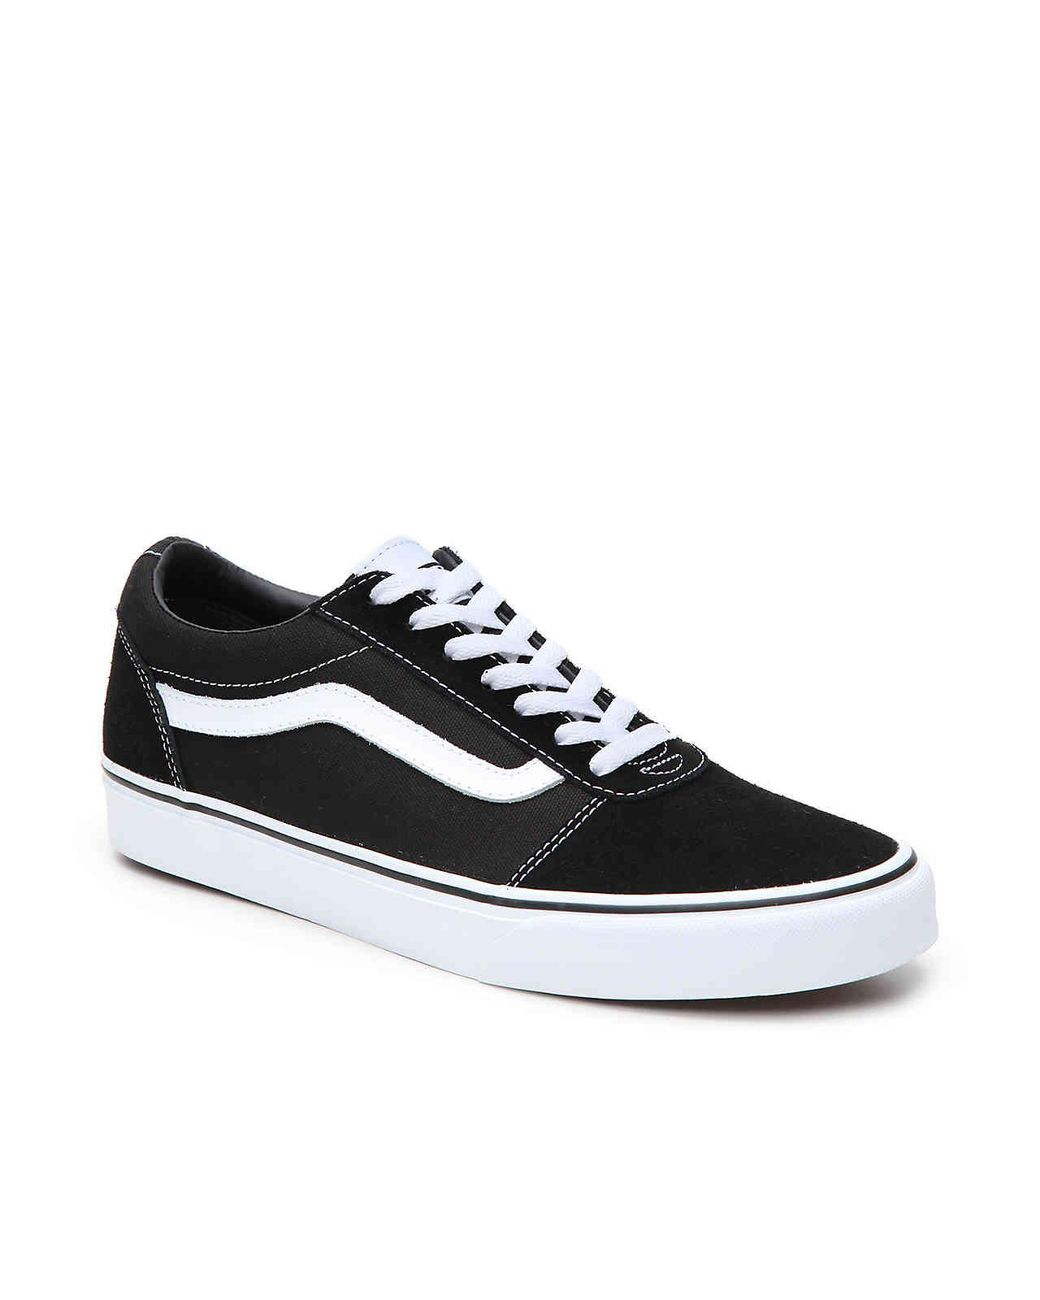 9d898f0336 Lyst - Vans Ward Suede canvas Low-top Sneakers in Black for Men